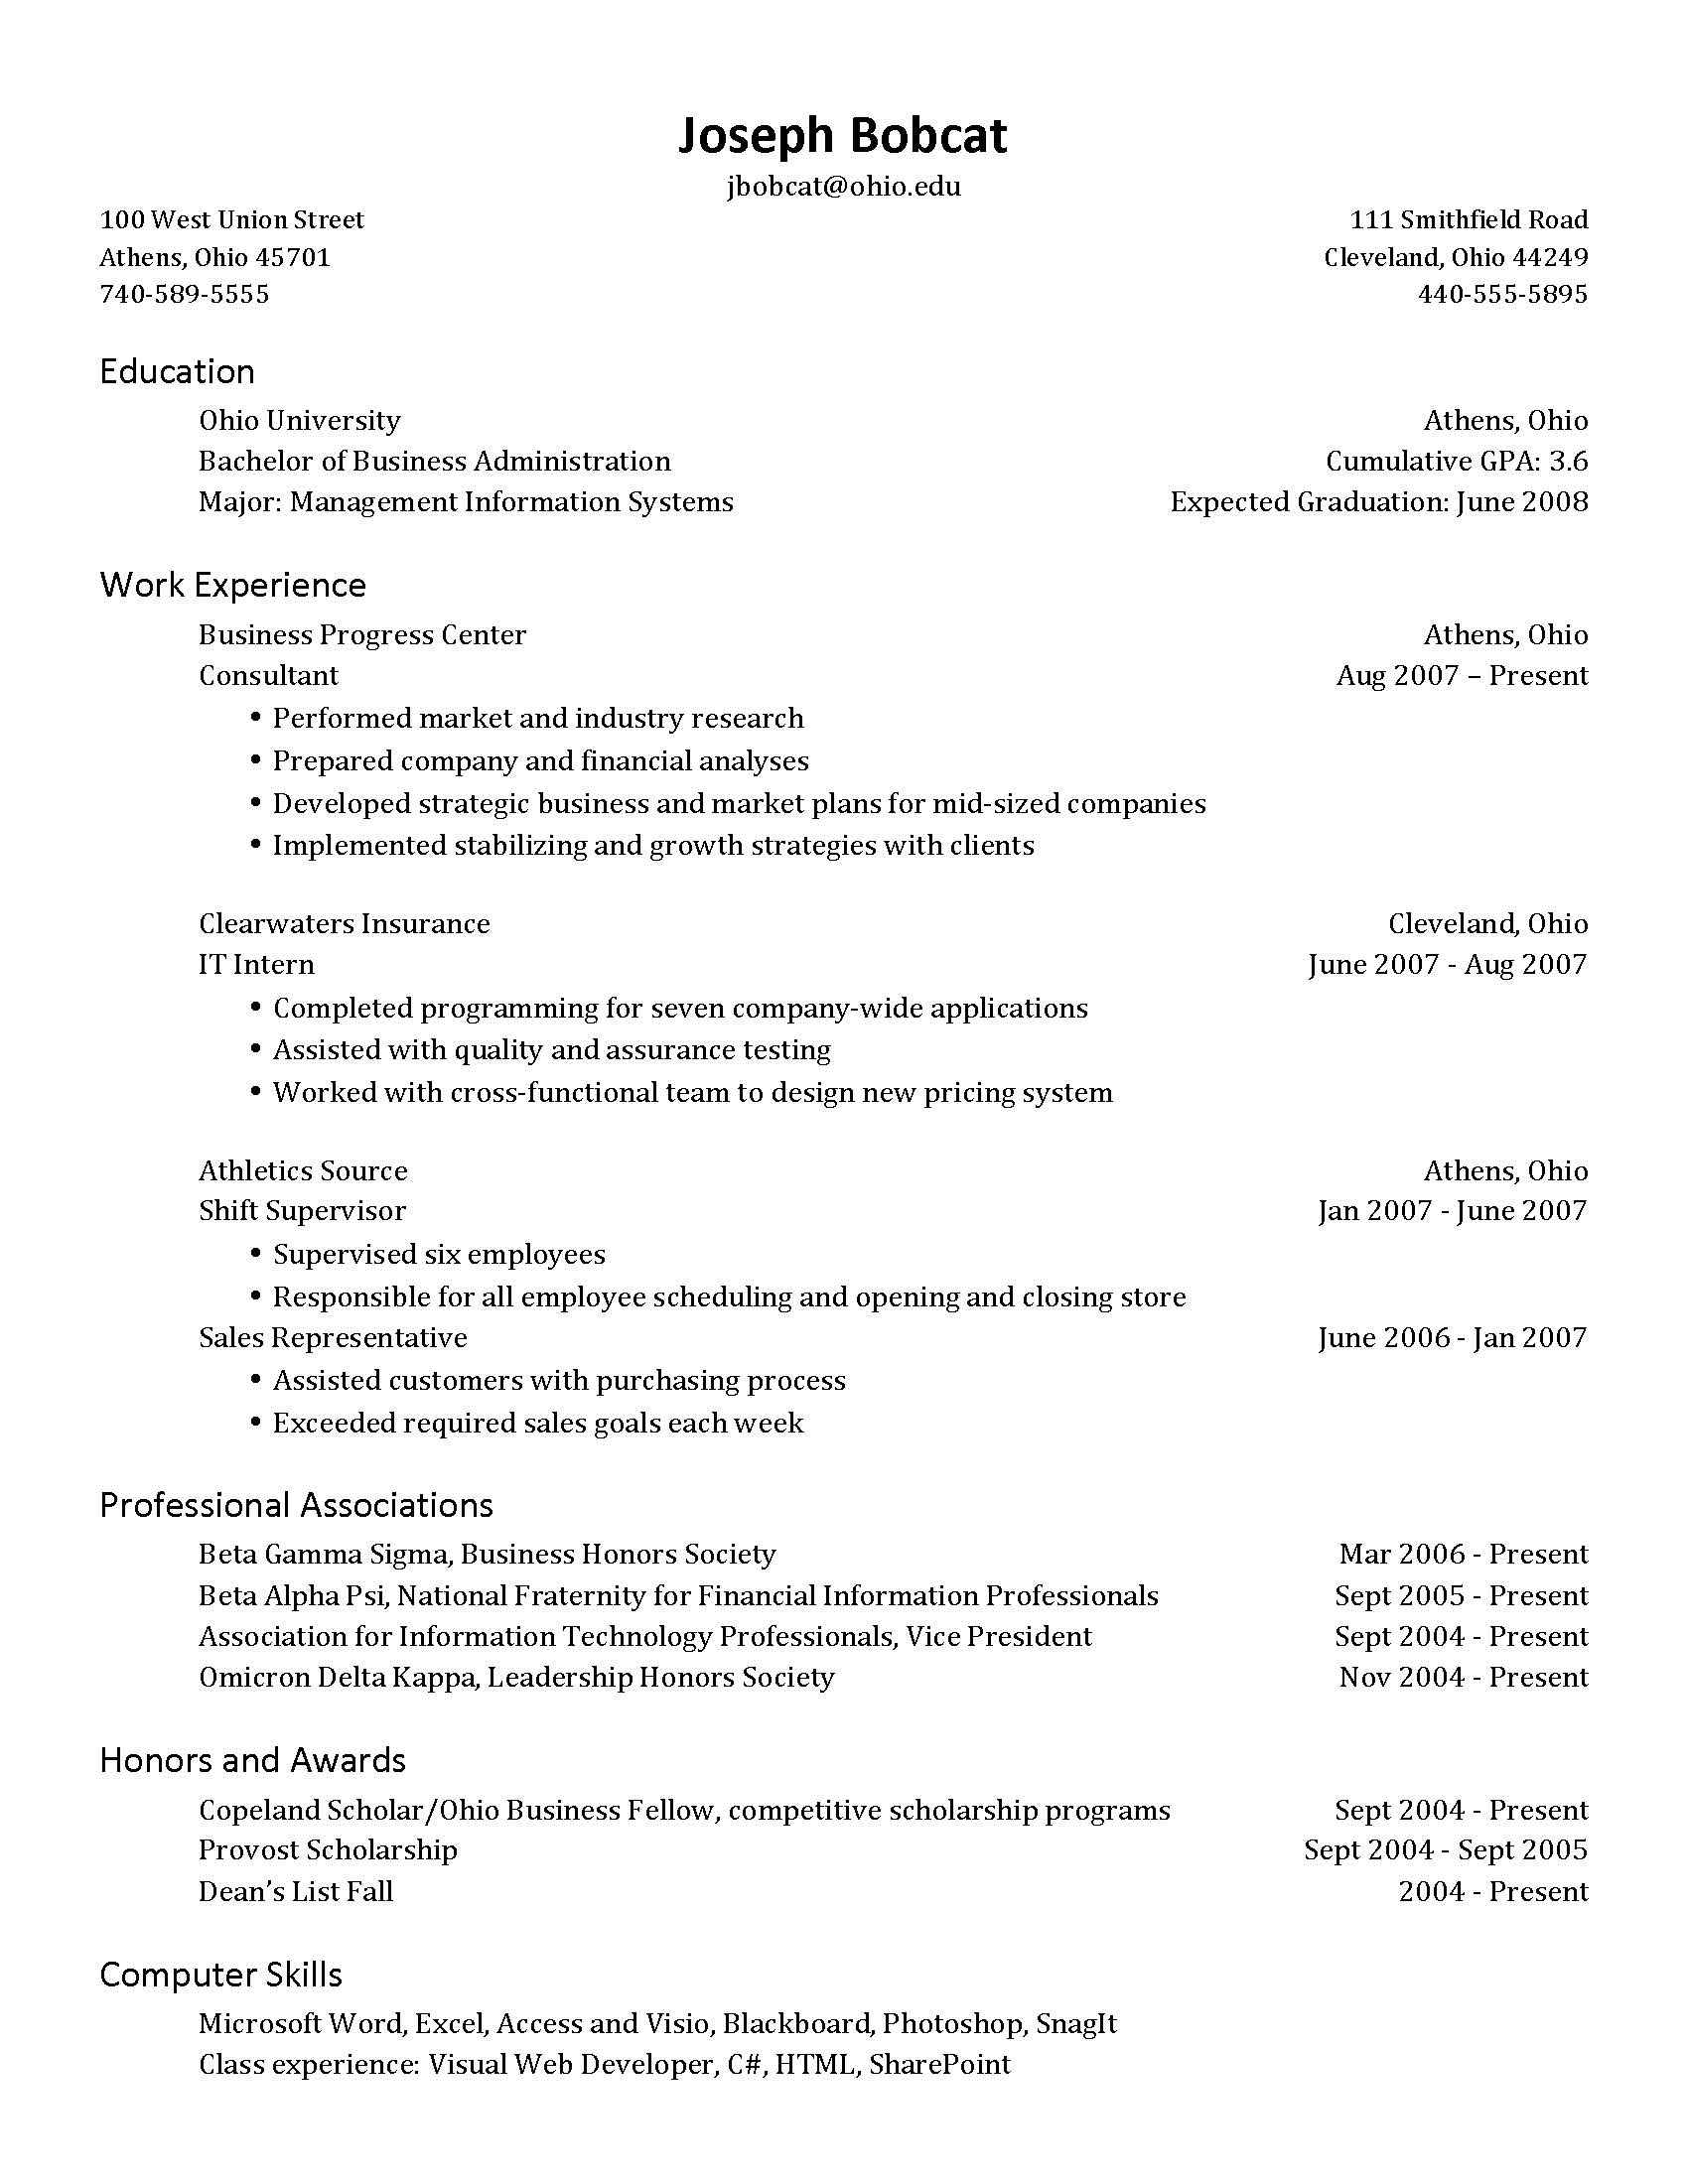 should references be included on a resume